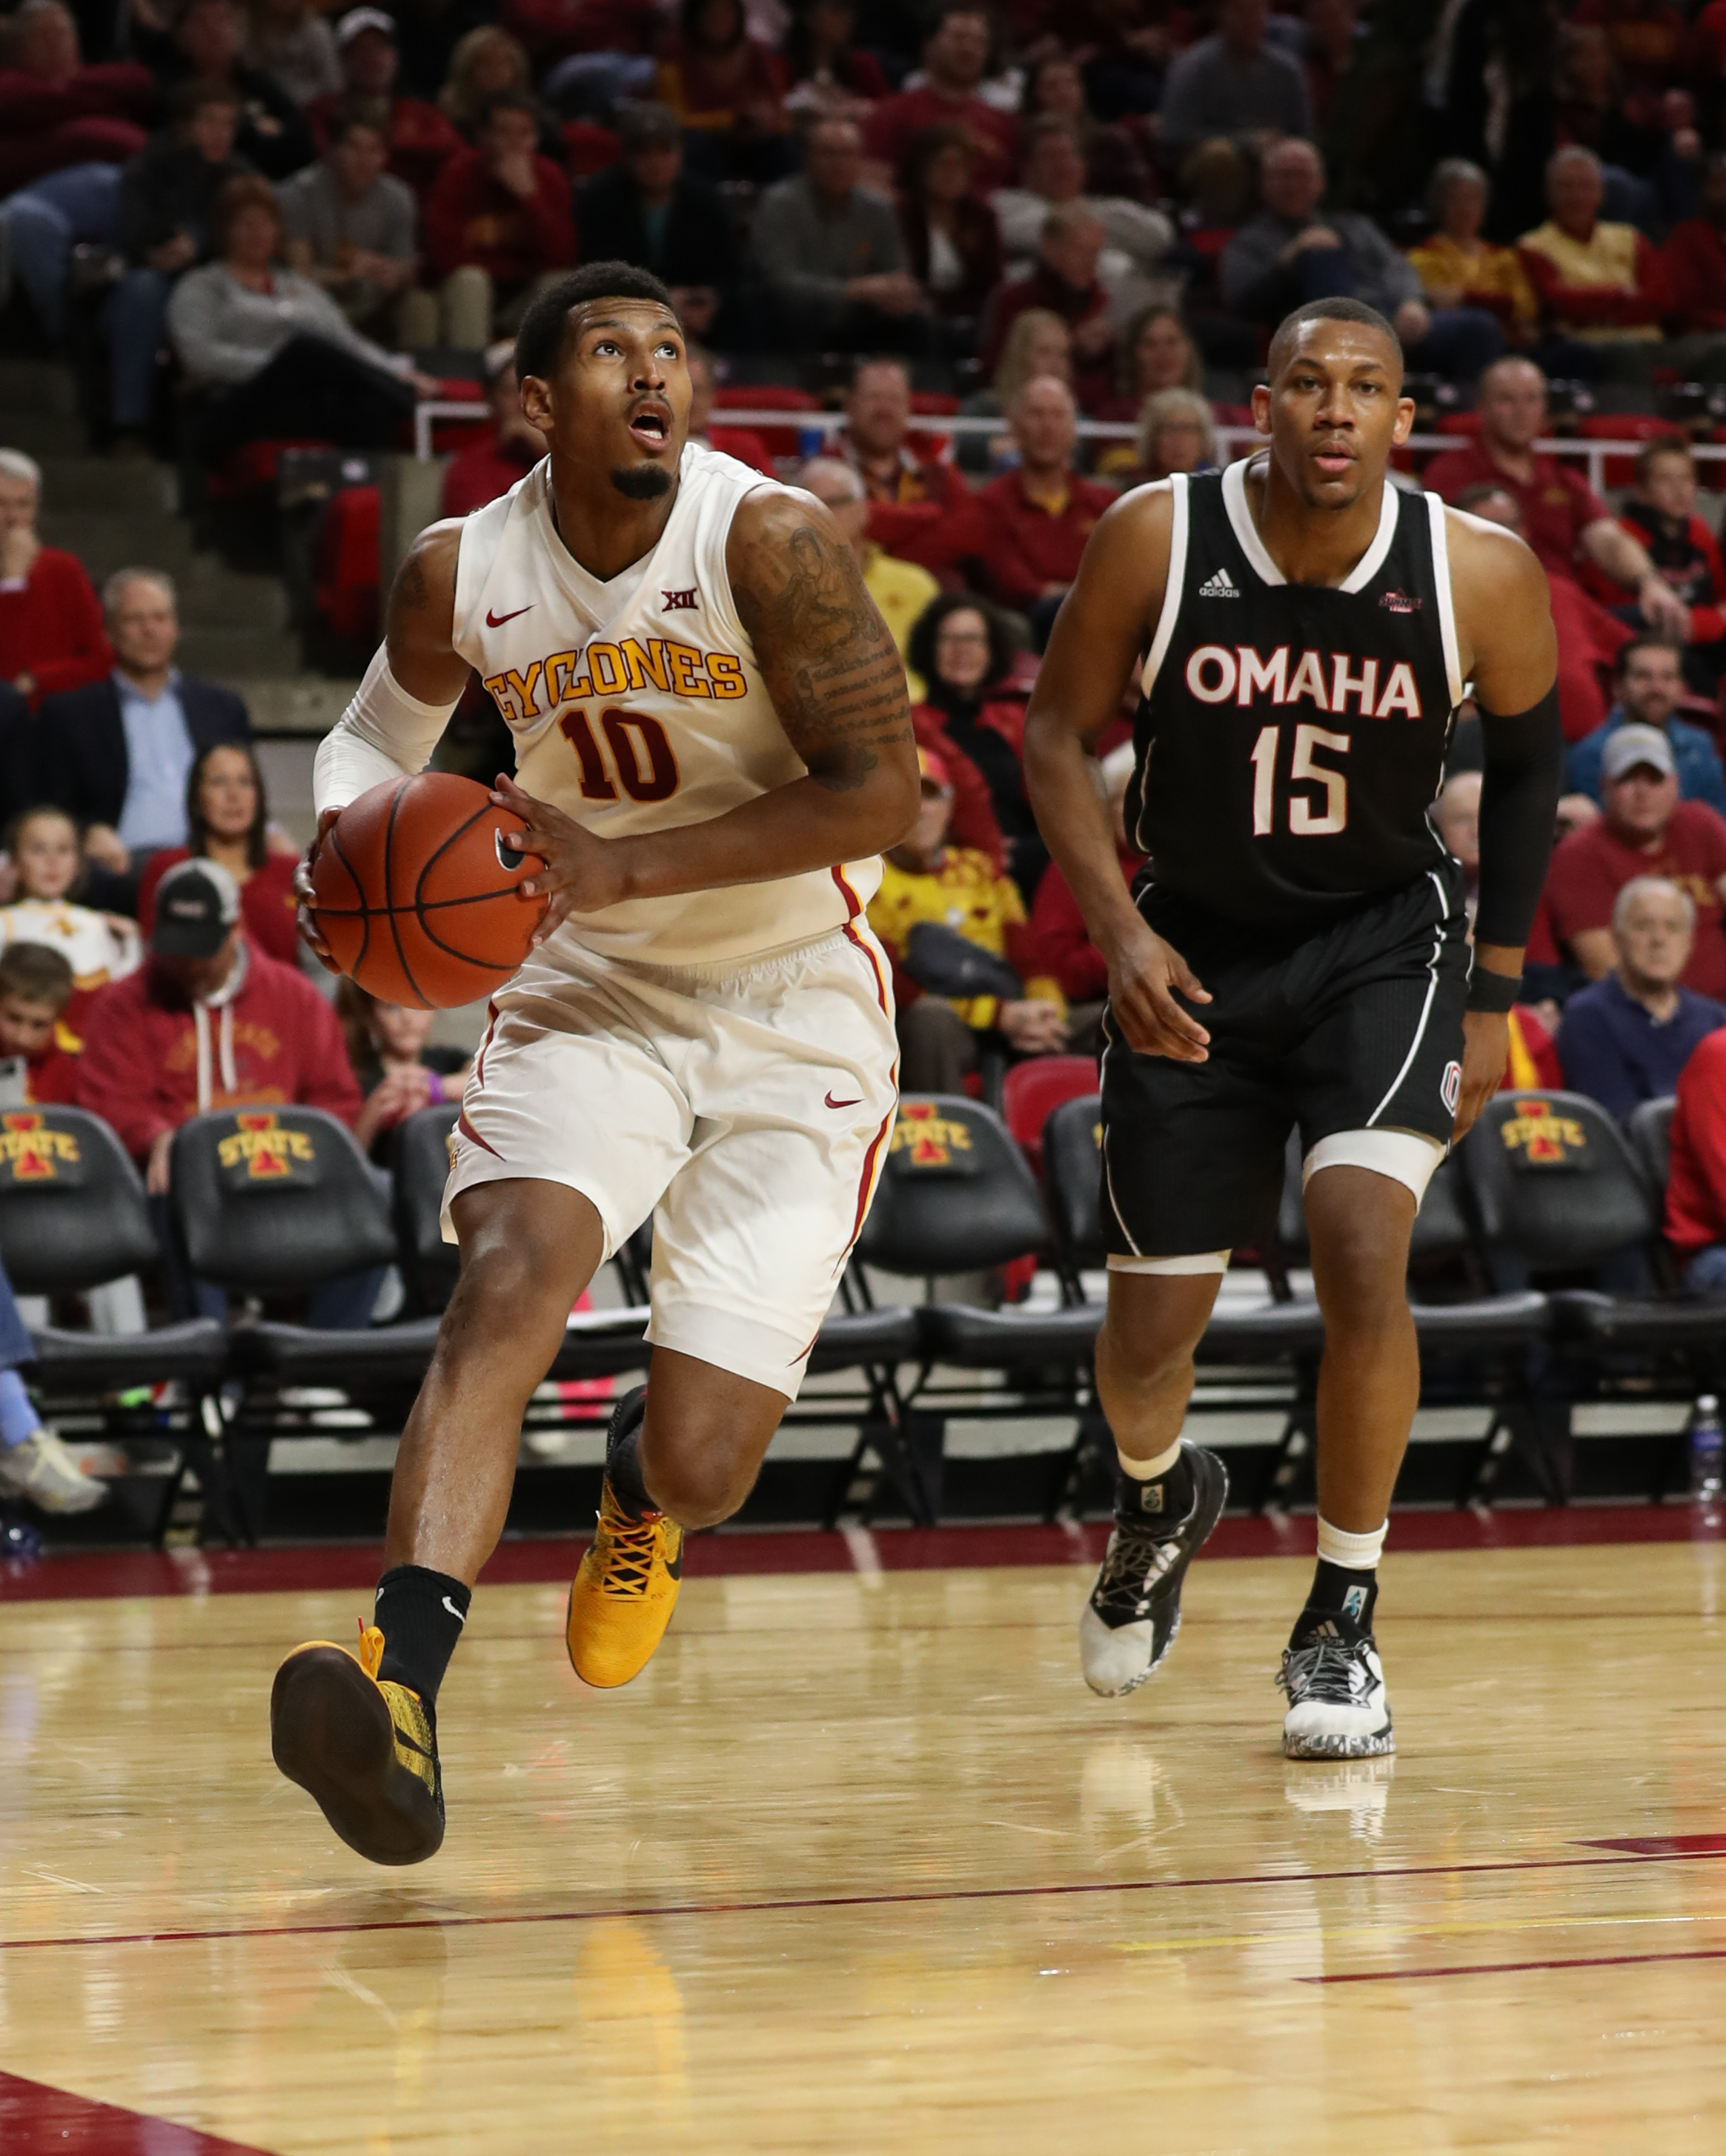 Dec 5, 2016; Ames, IA, USA; Iowa State Cyclones forward Darrell Bowie (10) looks to shoot against the Nebraska-Omaha Mavericks at James H. Hilton Coliseum. The Cyclones beat the Mavericks 91 to 47. Mandatory Credit: Reese Strickland-USA TODAY Sports